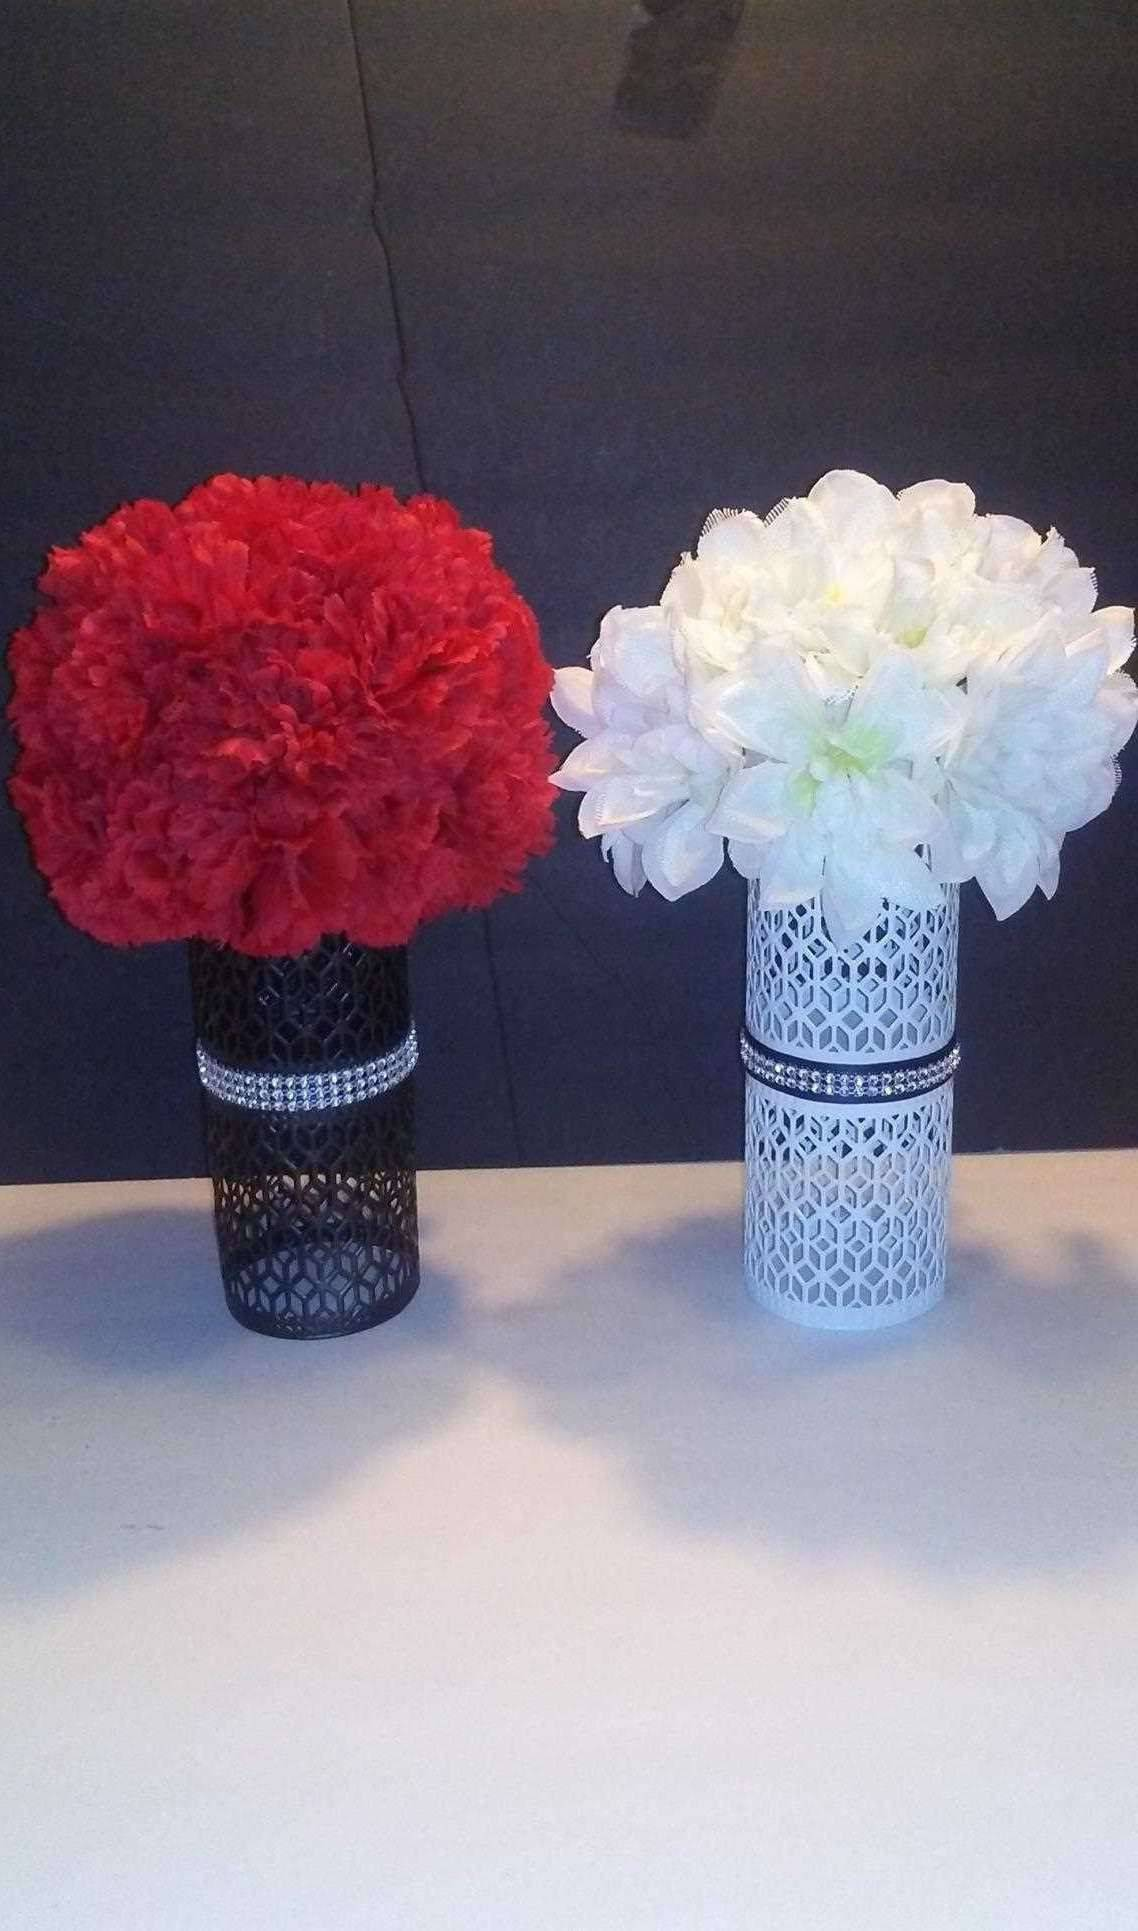 vase table centerpiece ideas of red table vases photograph dollar tree wedding decorations awesome h pertaining to red table vases photograph dollar tree wedding decorations awesome h vases